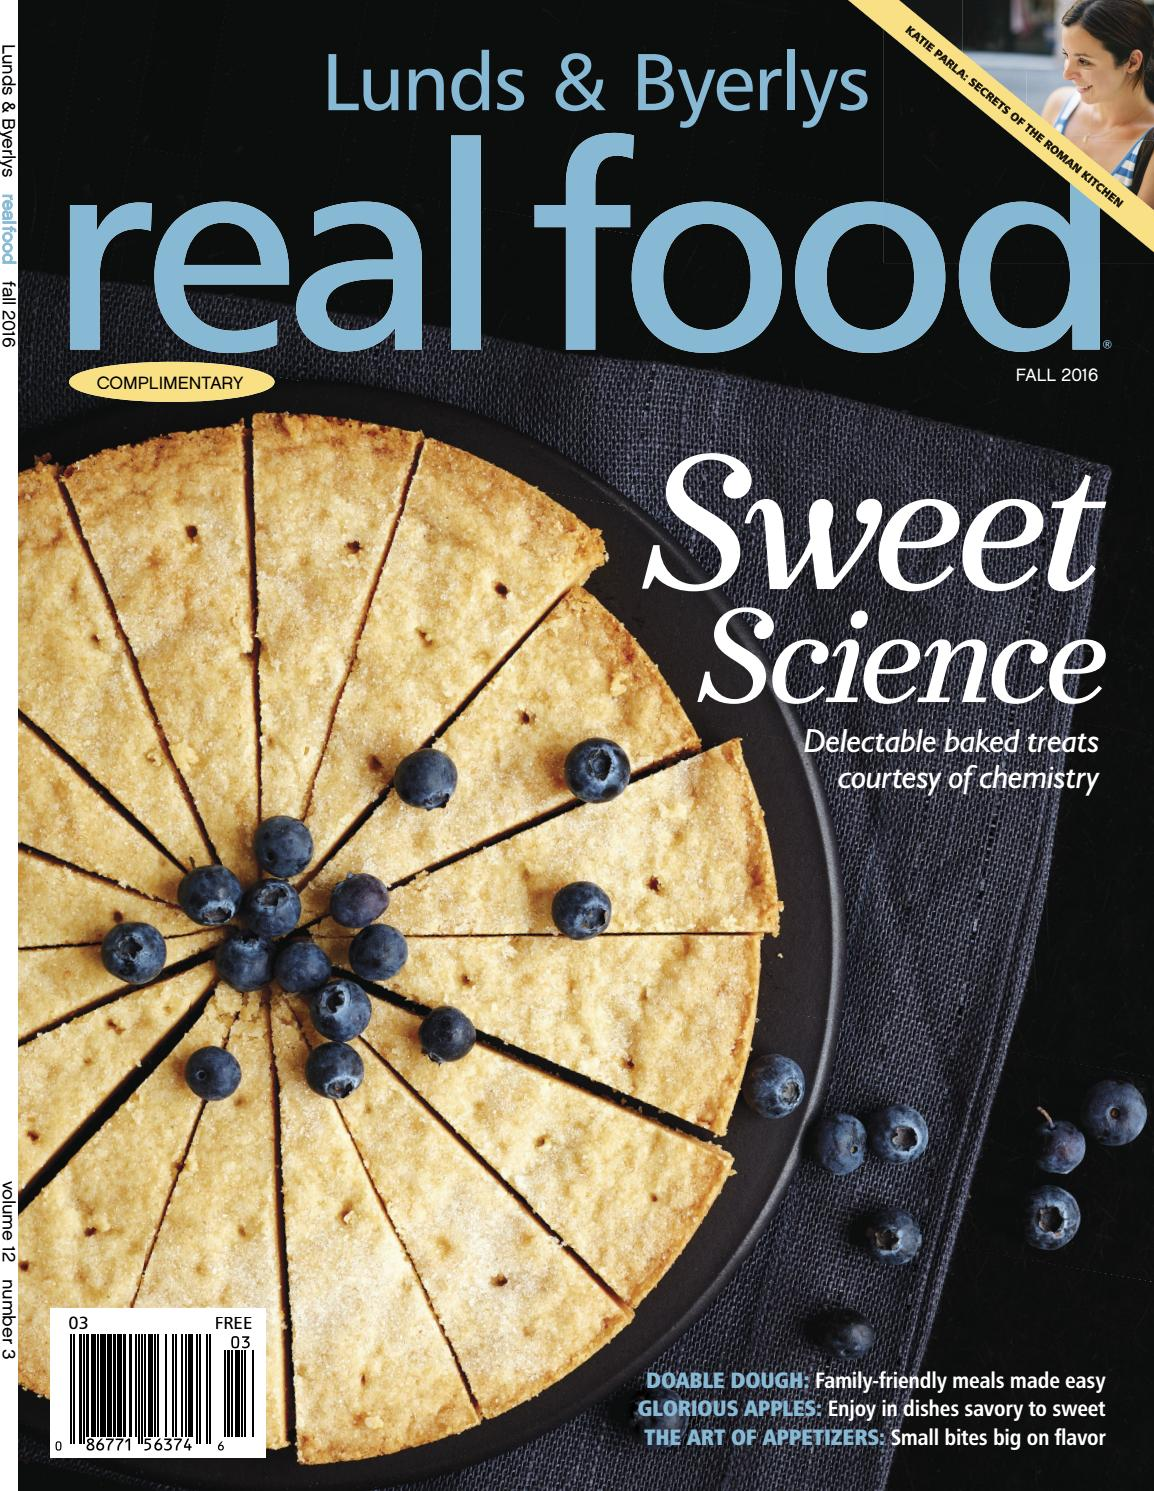 Lunds And Byerlys Real Food Fall 2016 By Lunds Byerlys Issuu